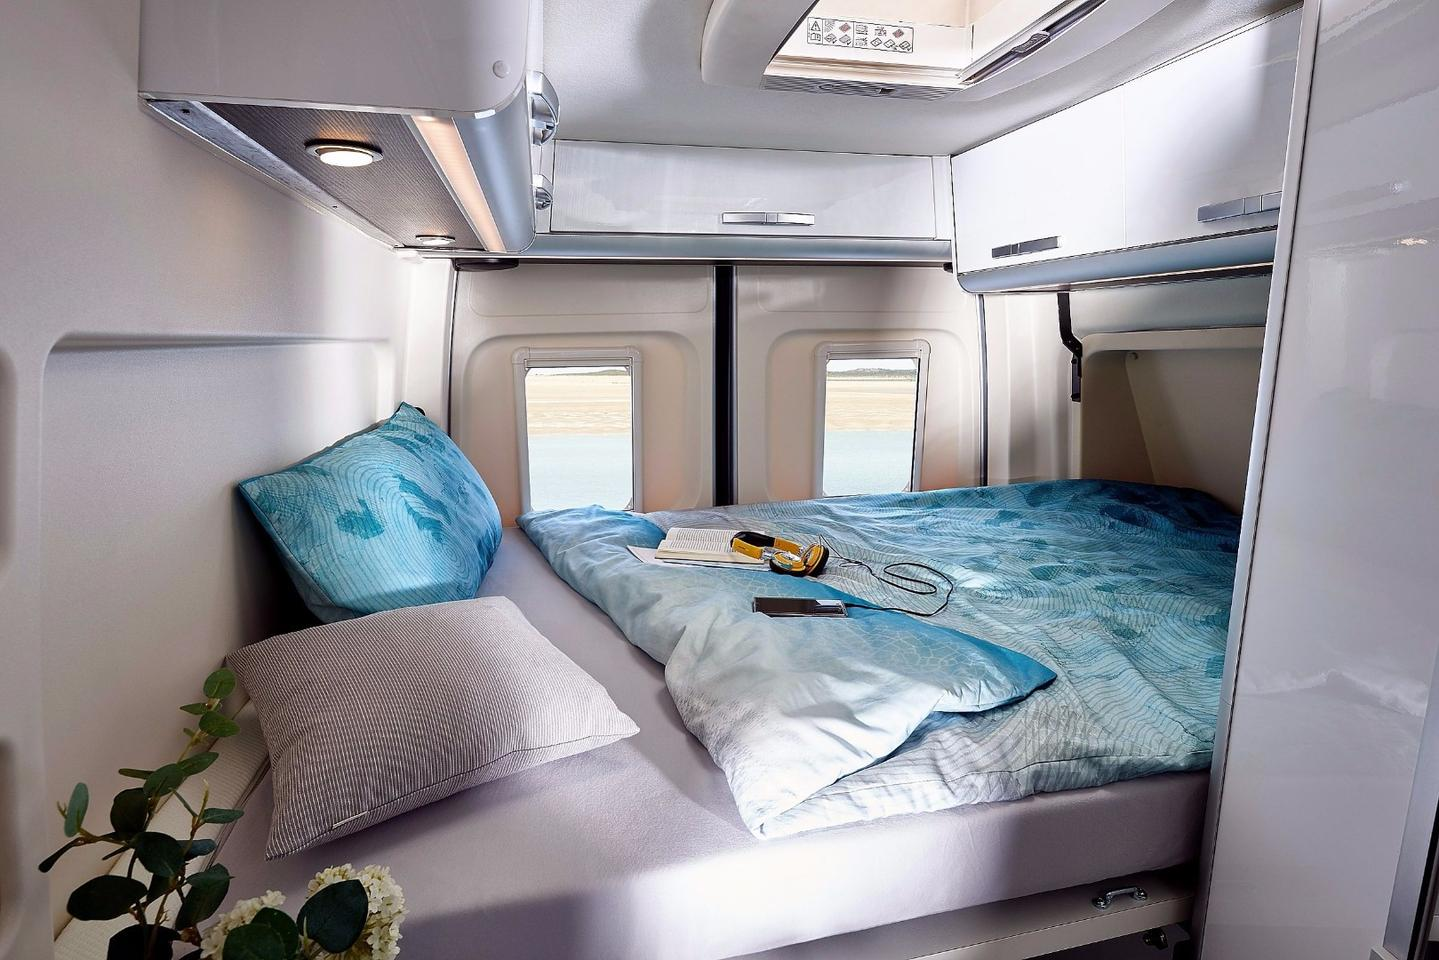 Westfalia opts for a transverse bed with an optional electrically extendablefoot box